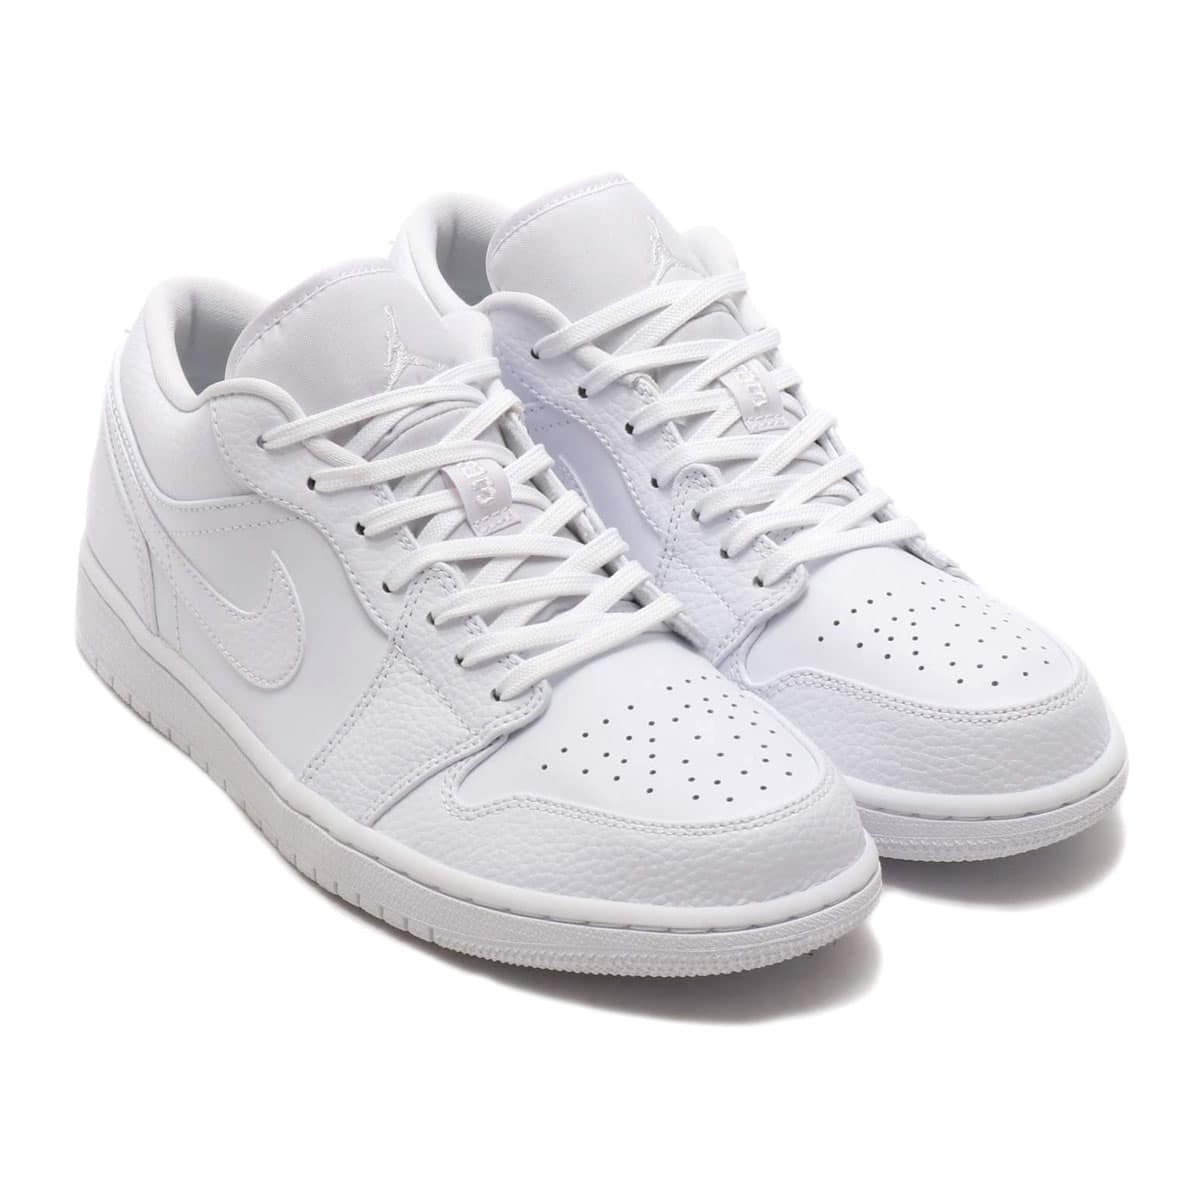 JORDAN BRAND AIR JORDAN 1 LOW WHITE/WHITE-WHITE 20SU-S_photo_large